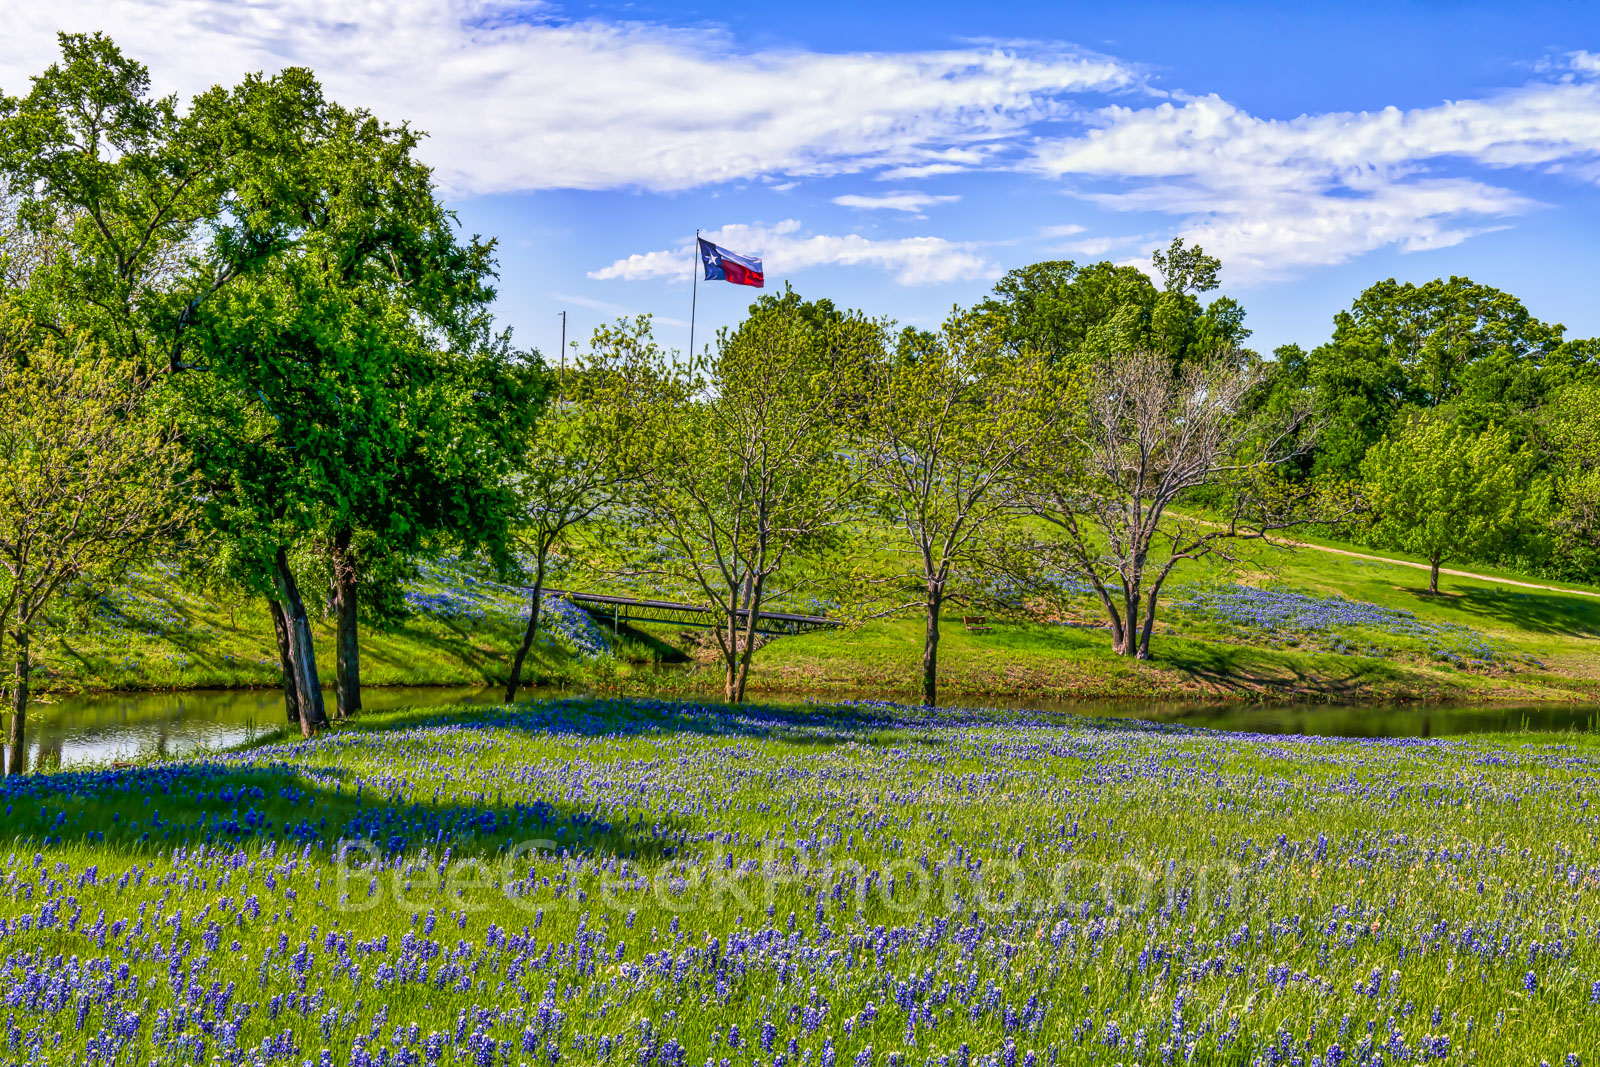 Texas bluebonnet landscape, bluebonnets, landscape, texas, bluebonnet trail, Ennis, wildflowers, wildflower, blue sky, creek, Texas flag, ranch, creek, pond, scene, rural texas landscape,, photo